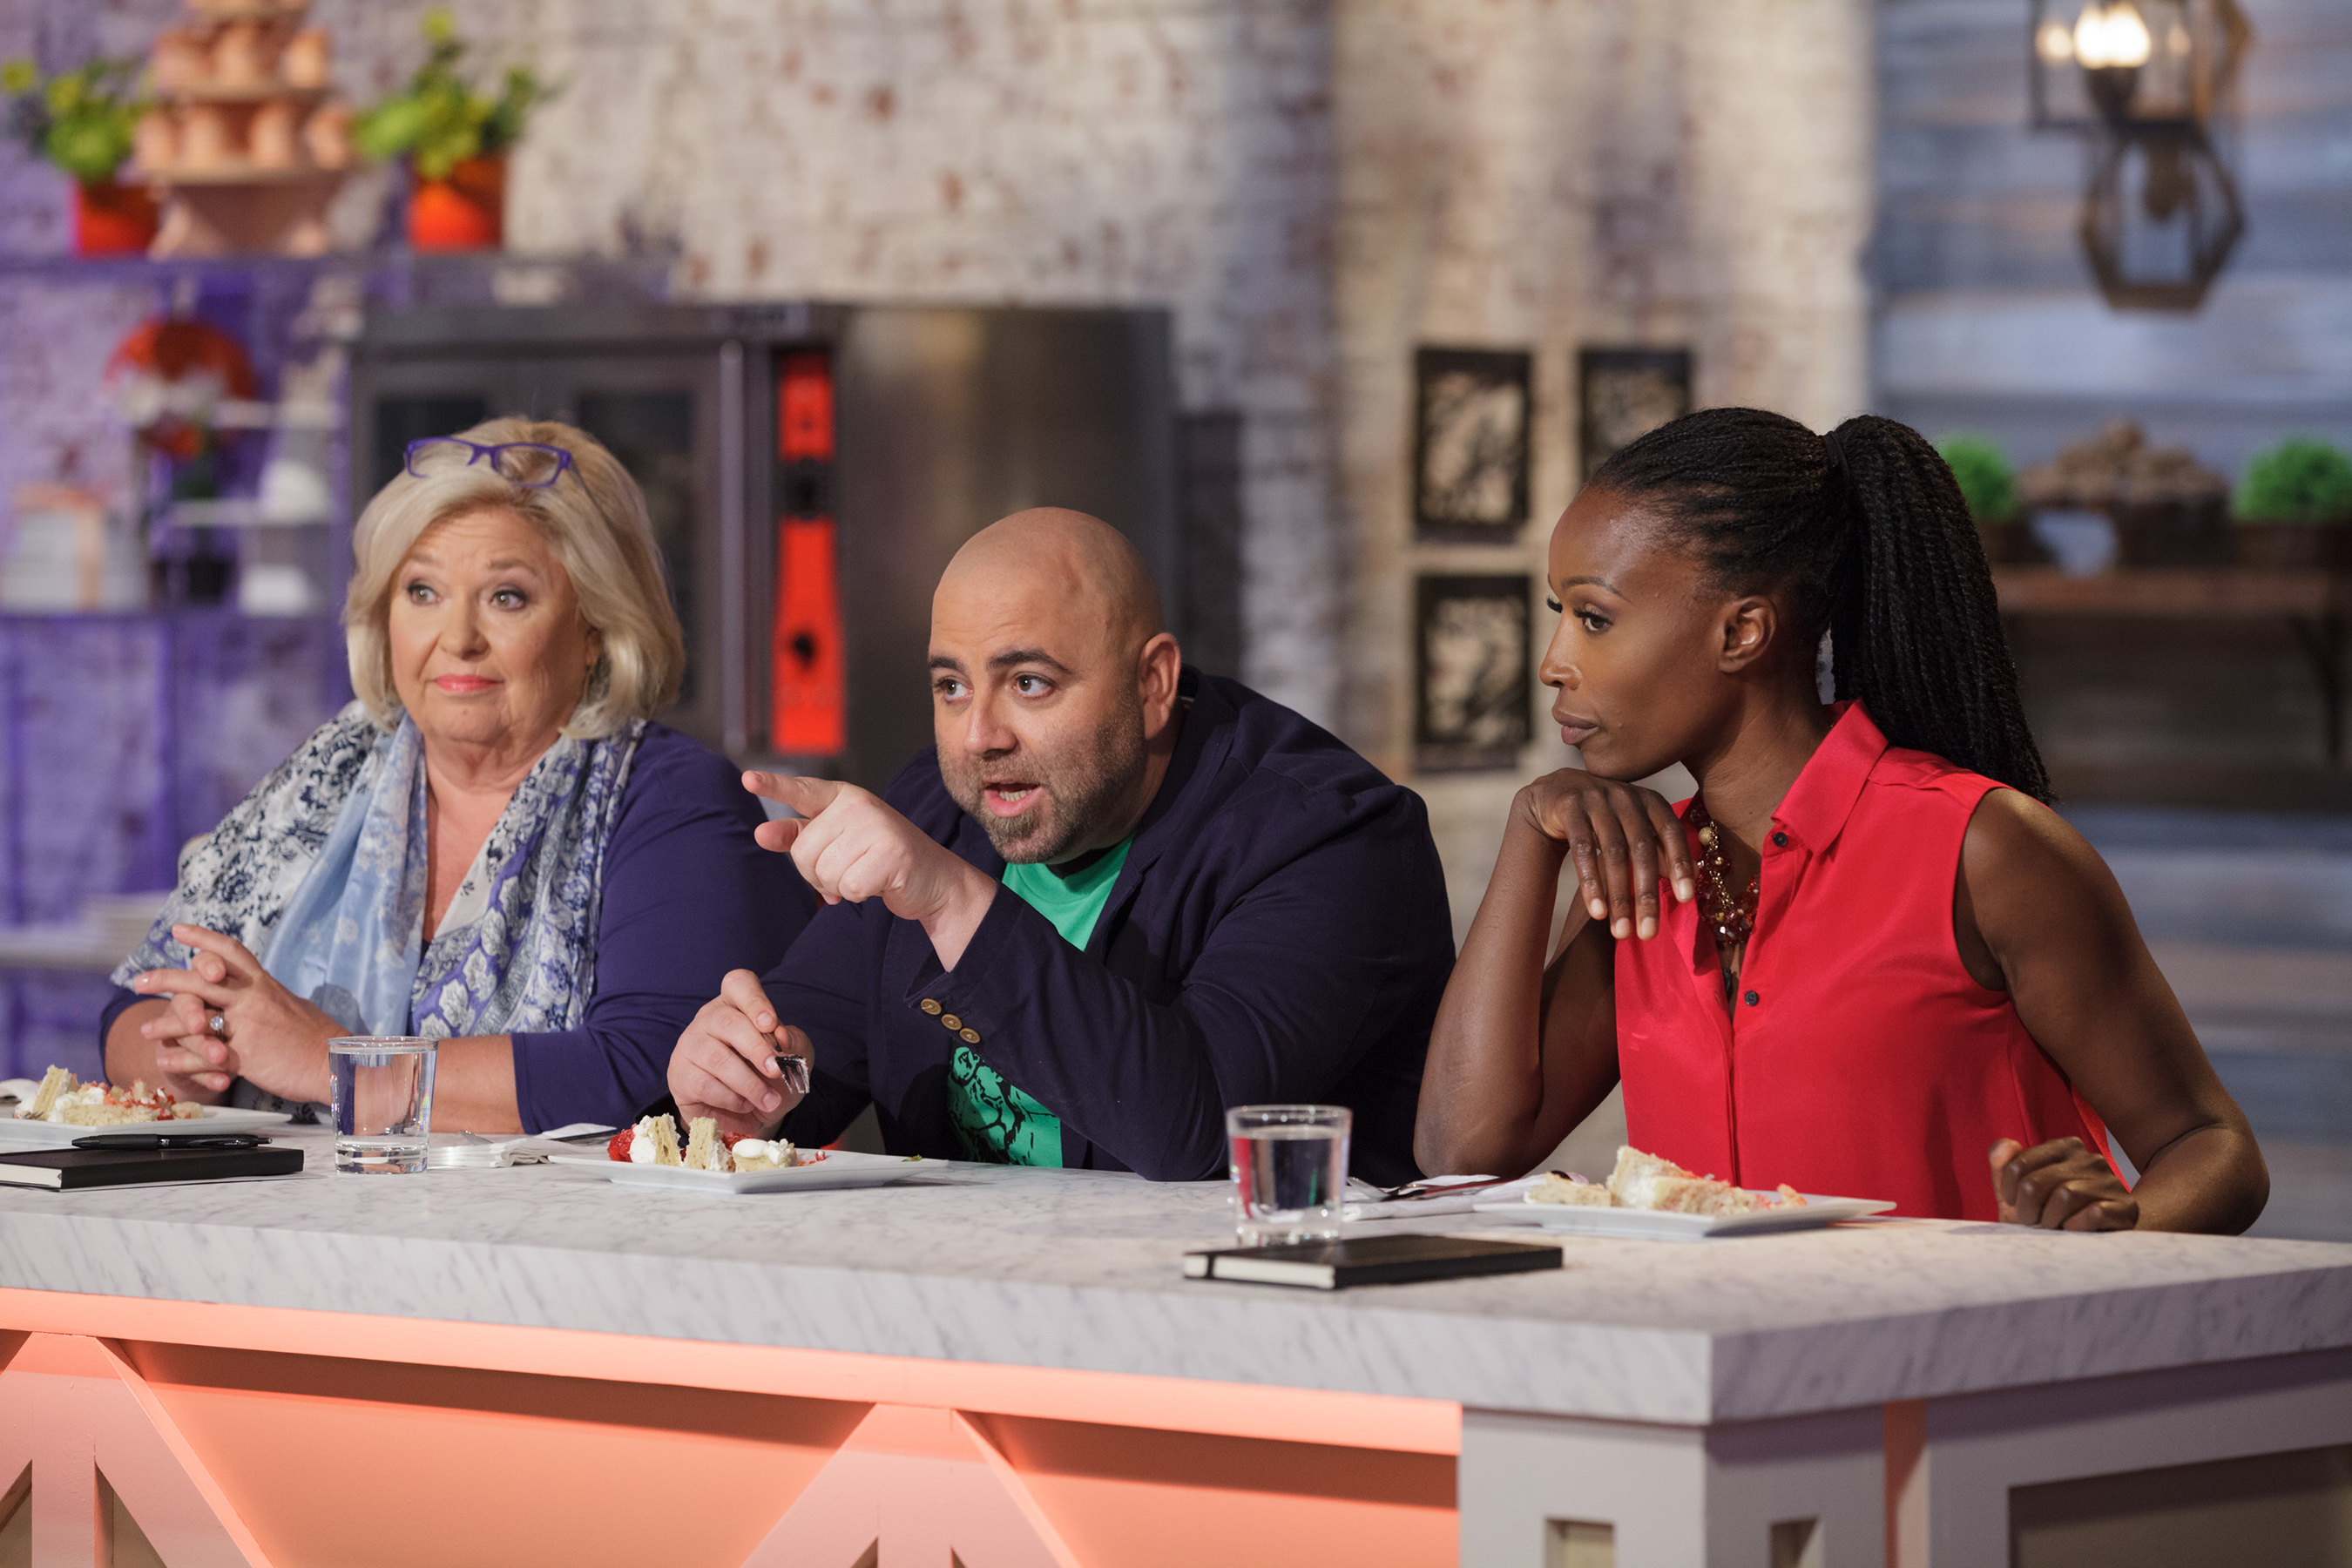 Judges Nancy Fuller, Duff Goldman and Lorraine Pascale on Food Network's Spring Baking Championship